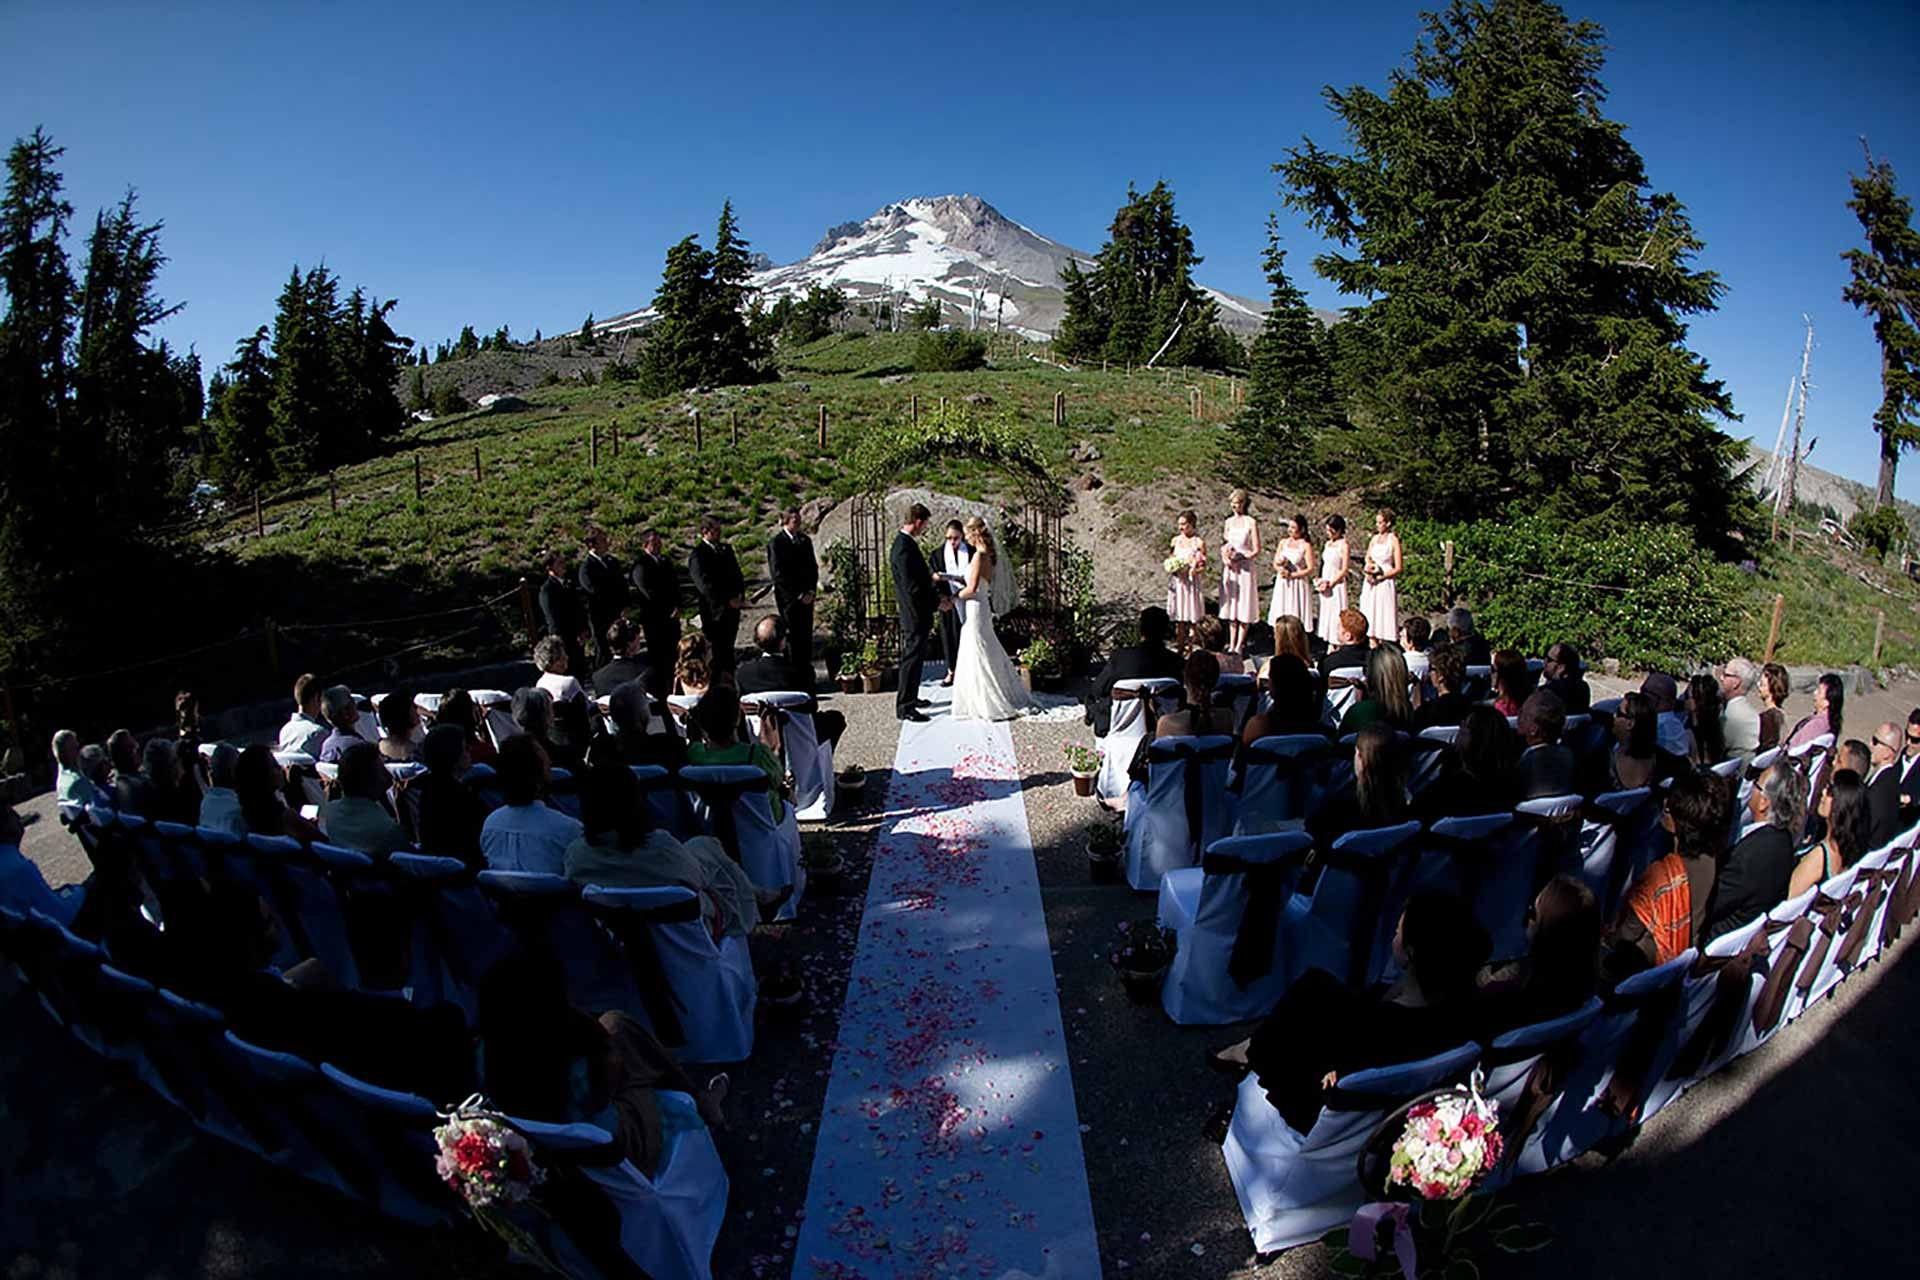 TIMBERLINE WEDDINGS ULLMAN PATIO